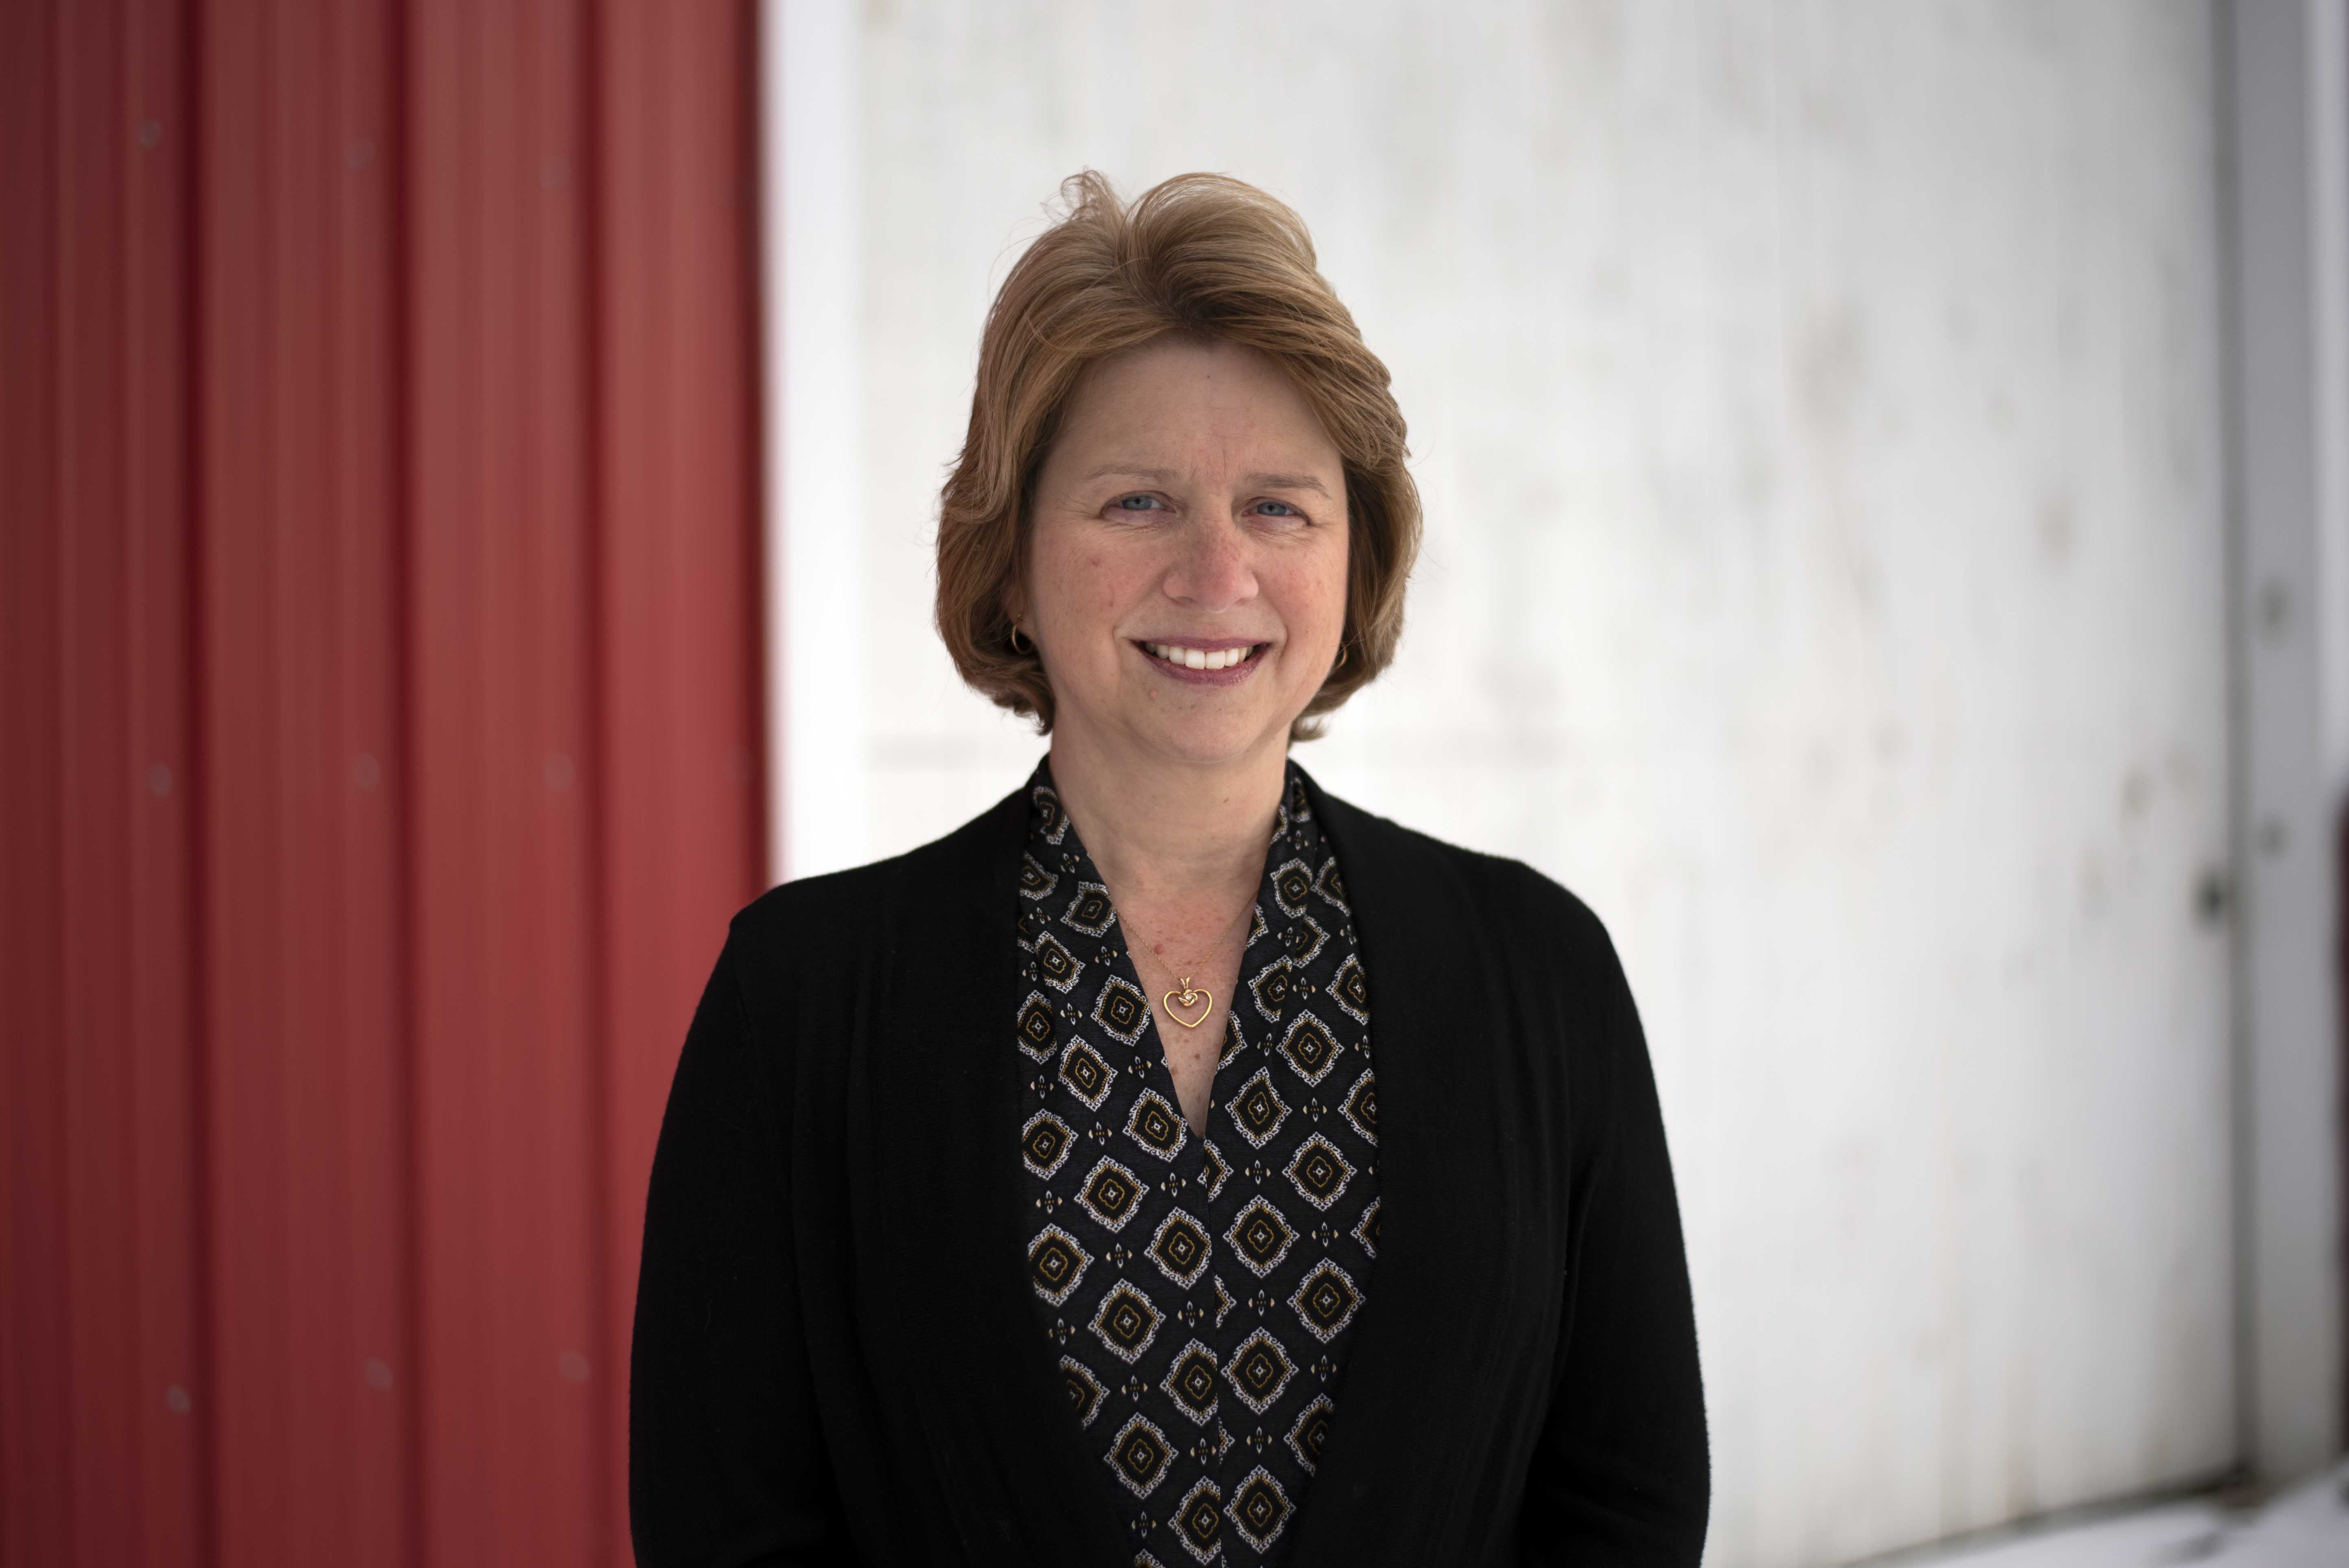 Laurie Gardner – Chief Business Officer